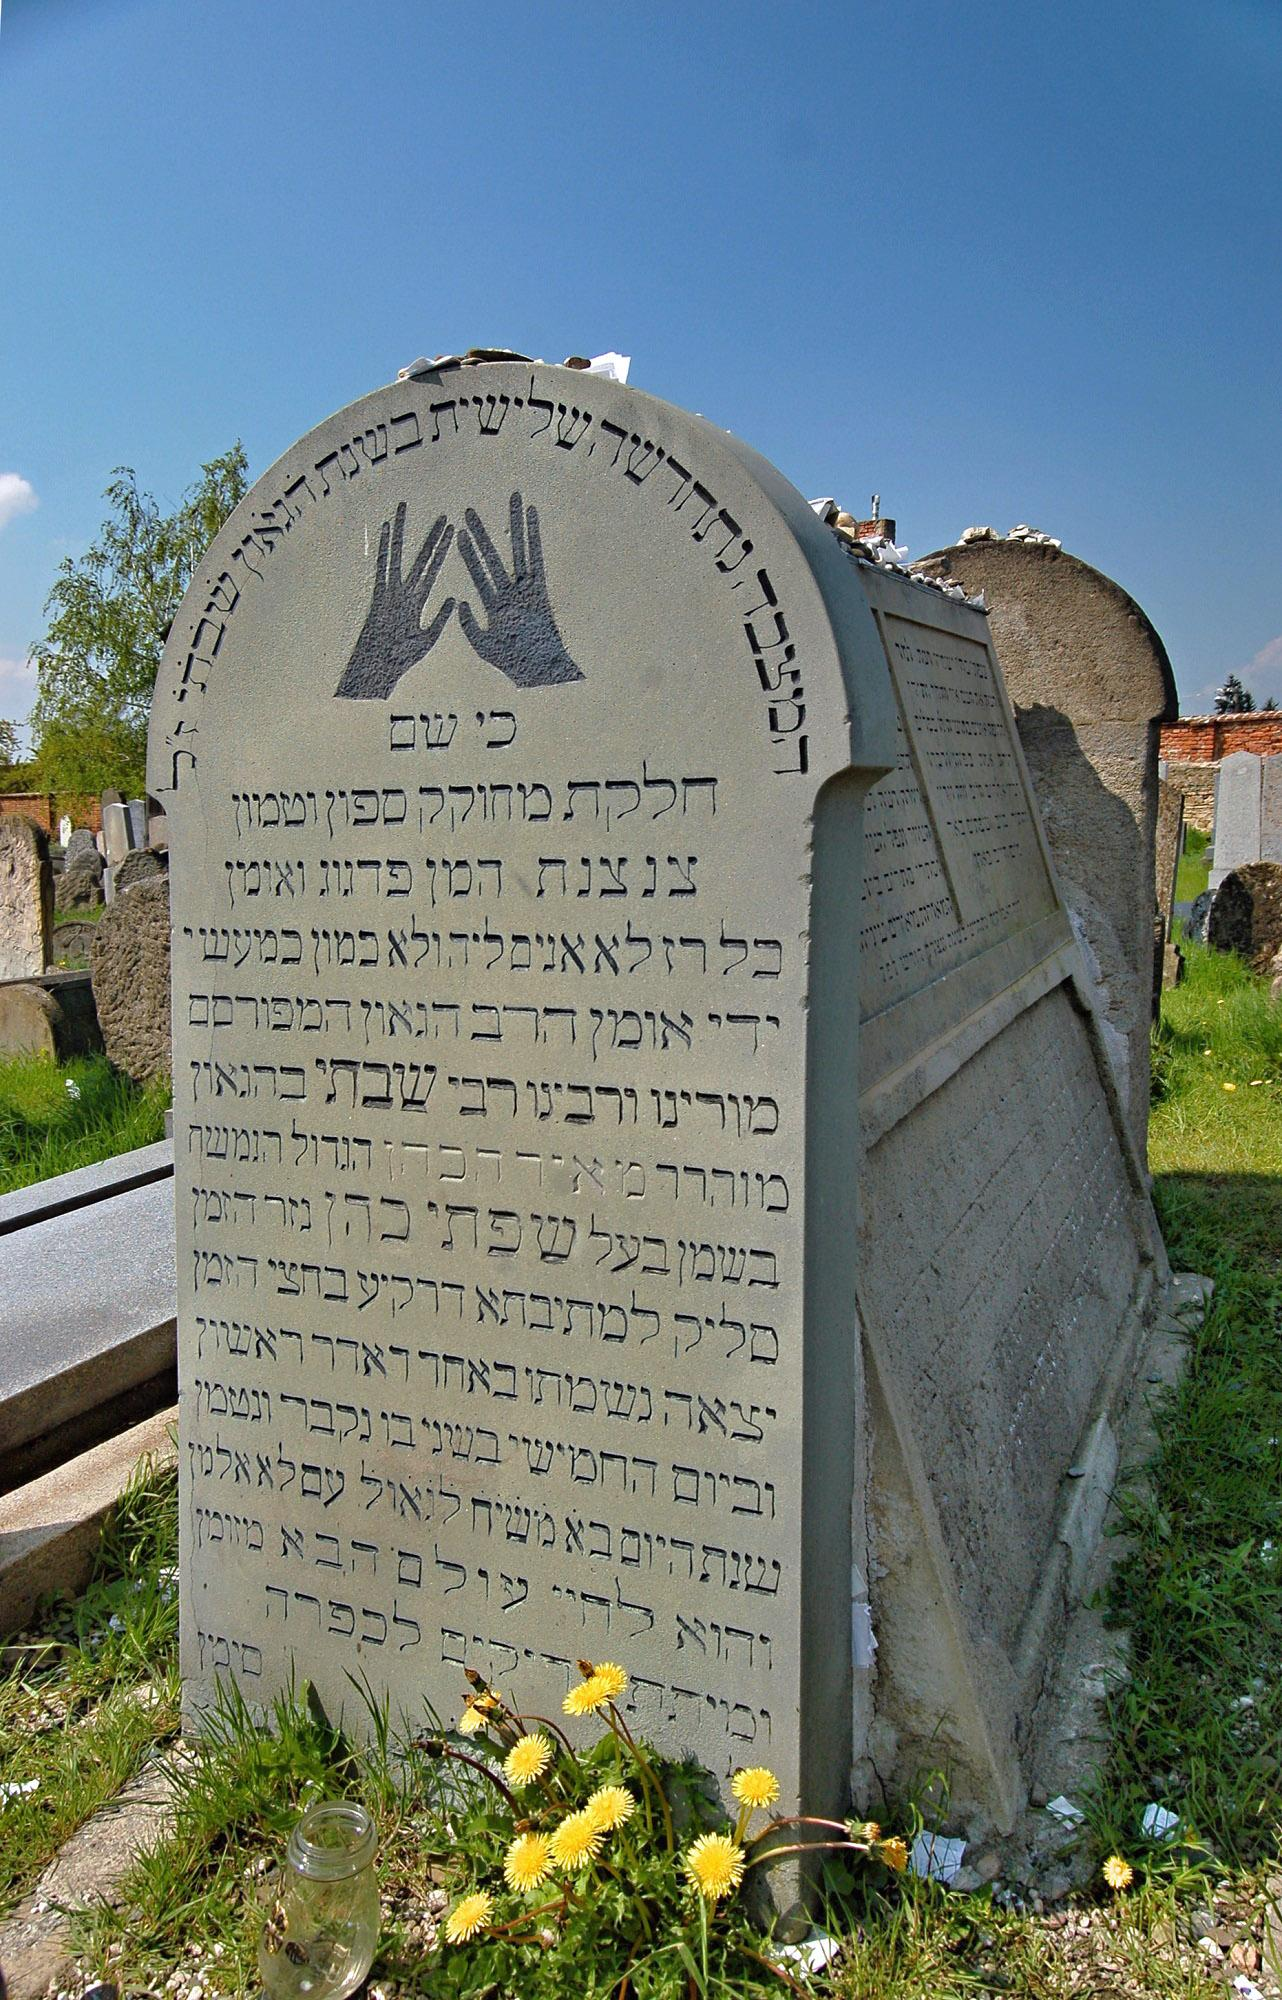 The grave of Rabbi Shakh at the Jewish cemetery and the synagogue in Holešov attract many visitors from all over the world. – © Vratislav Brázdil